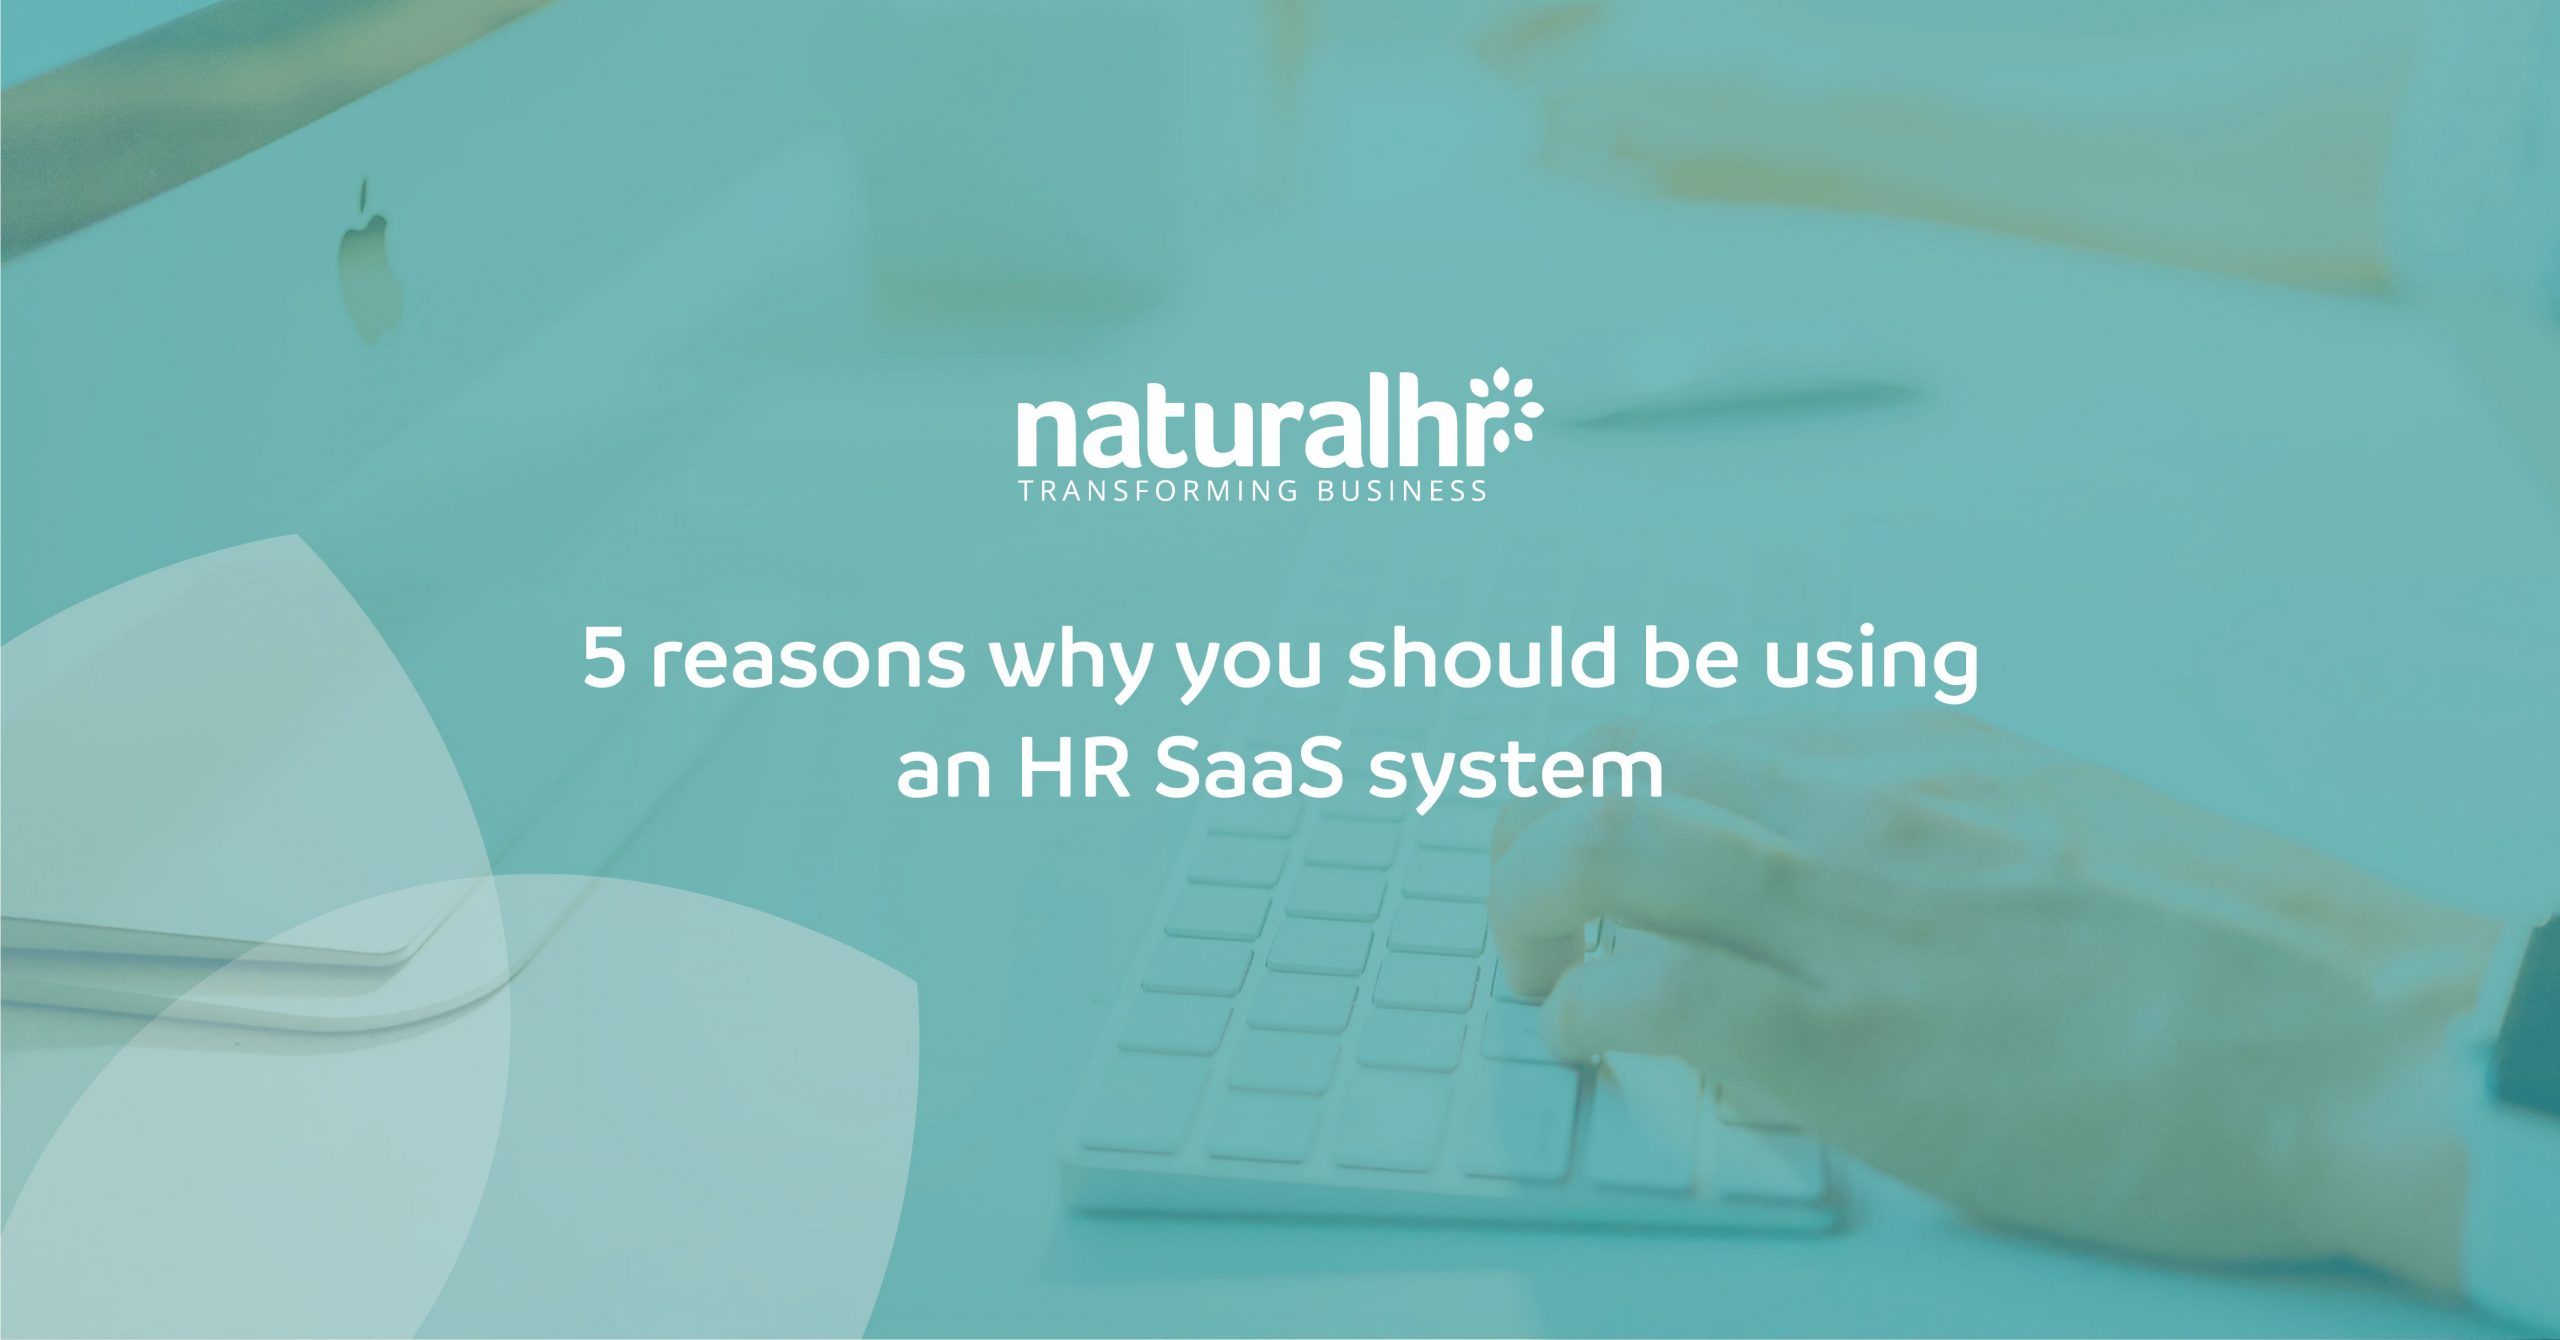 Why should you be using an HR SaaS system?